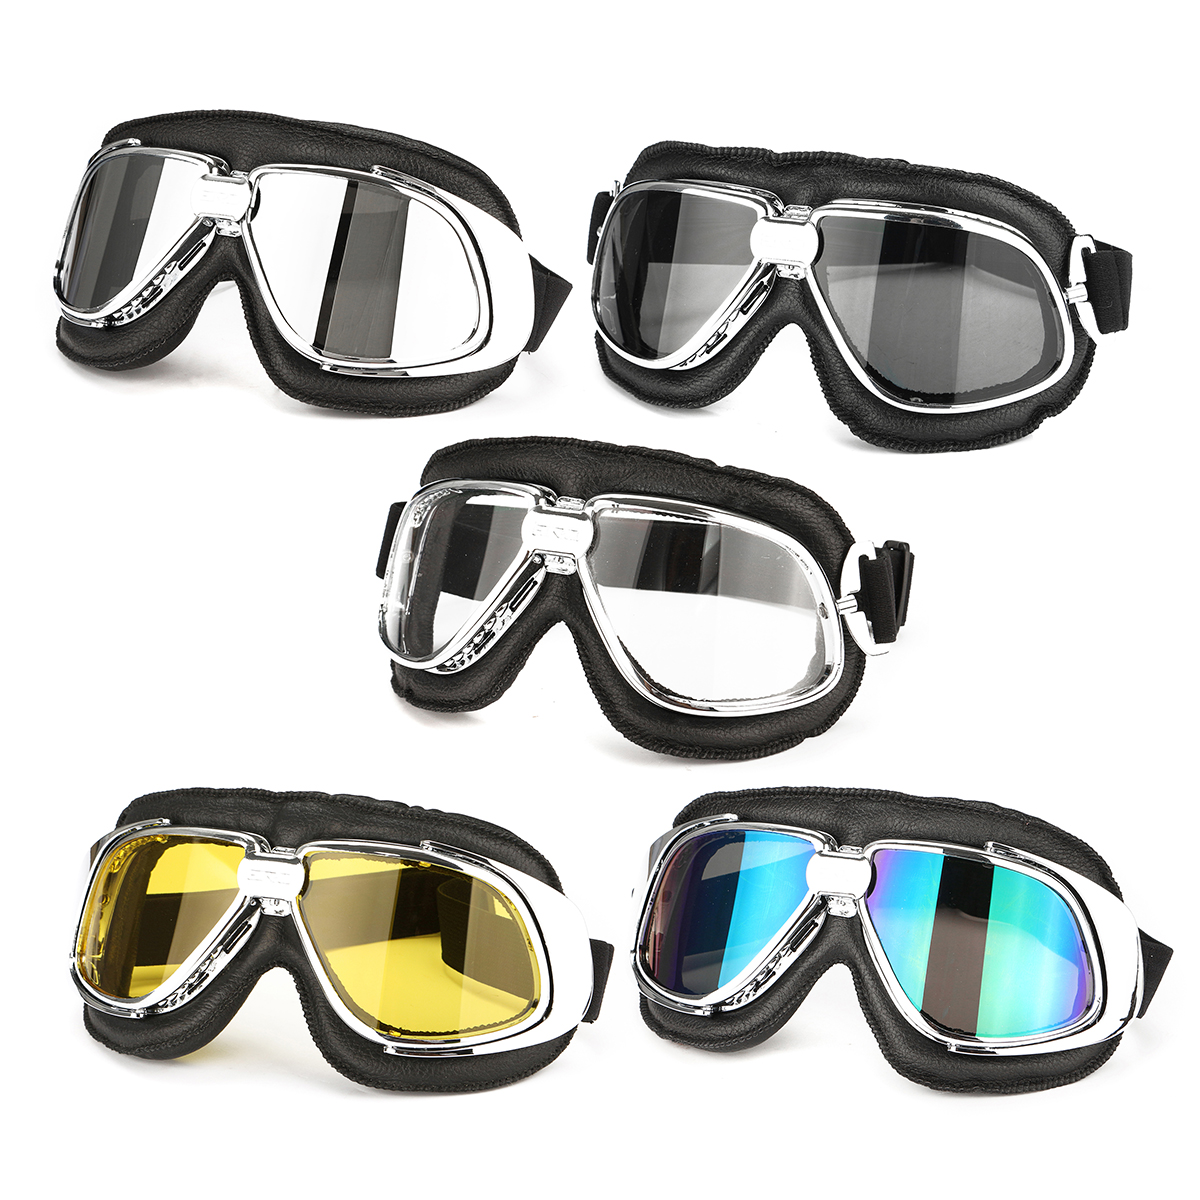 Motorbike Motorcycle Racing Goggle Eye Protect Helmet Glasses